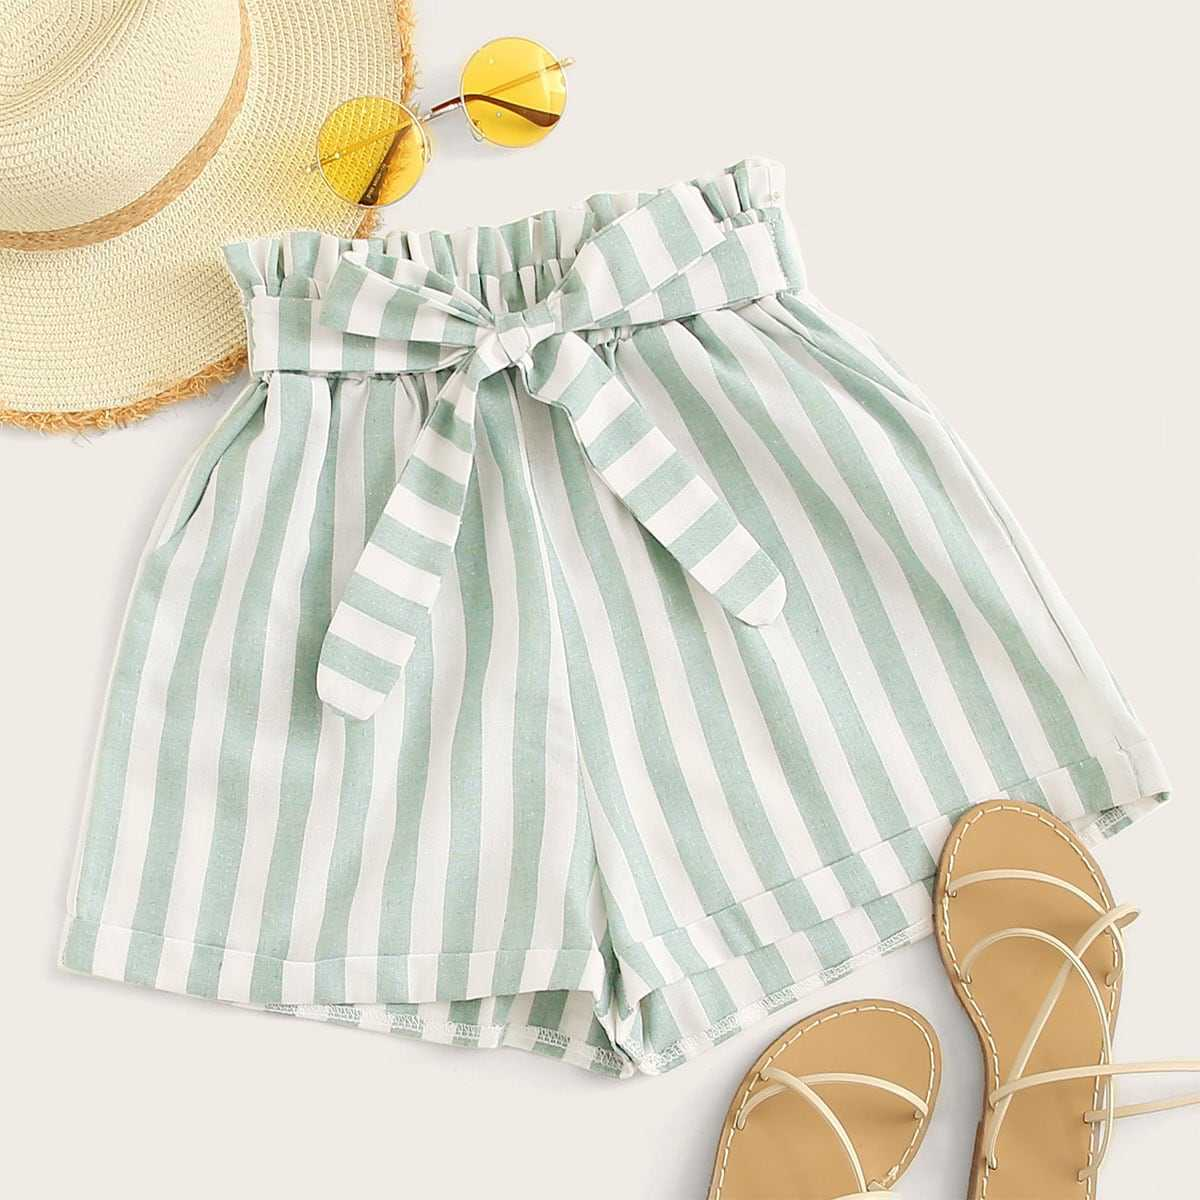 Striped Tie Front Paperbag Shorts in Green by ROMWE on GOOFASH